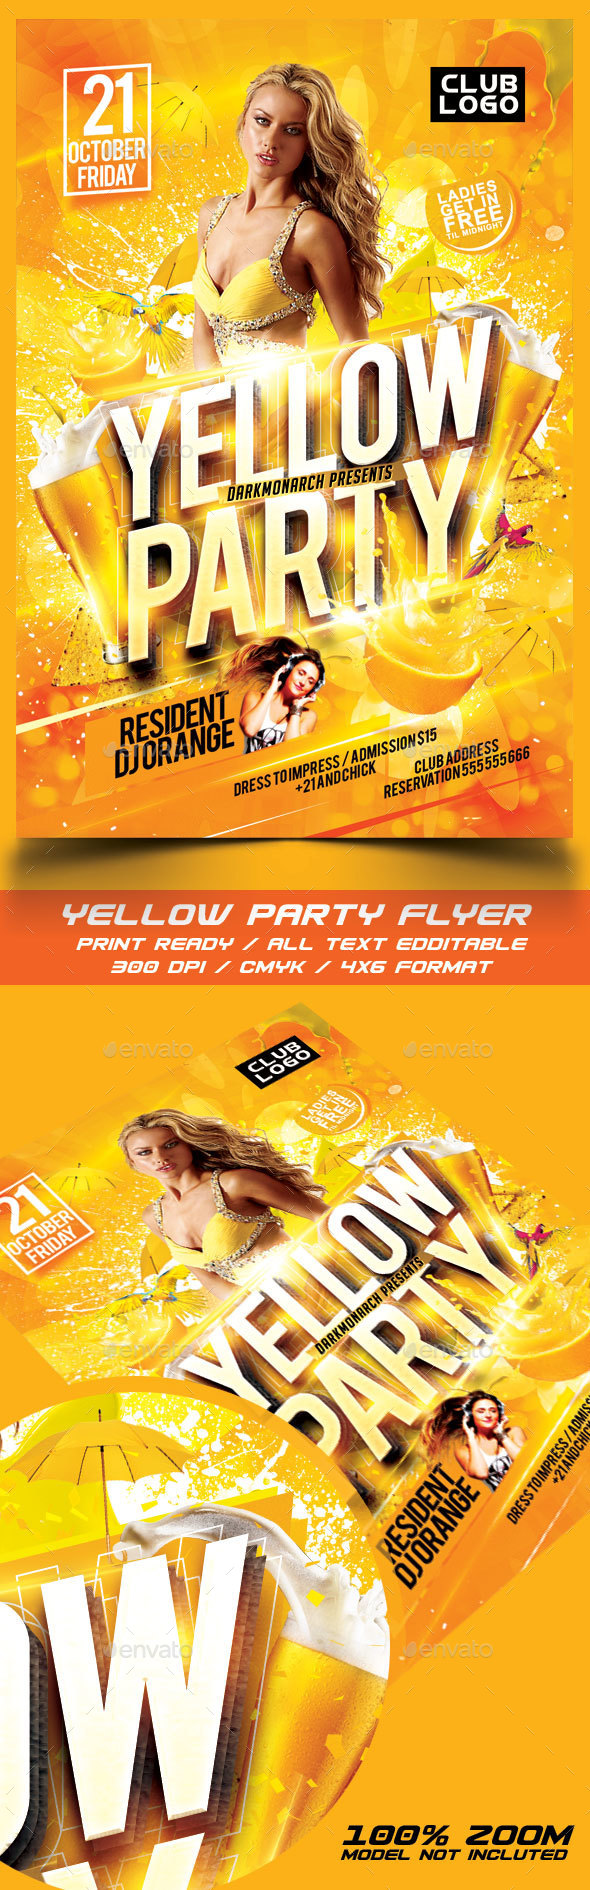 Yellow Party Flyer - Events Flyers